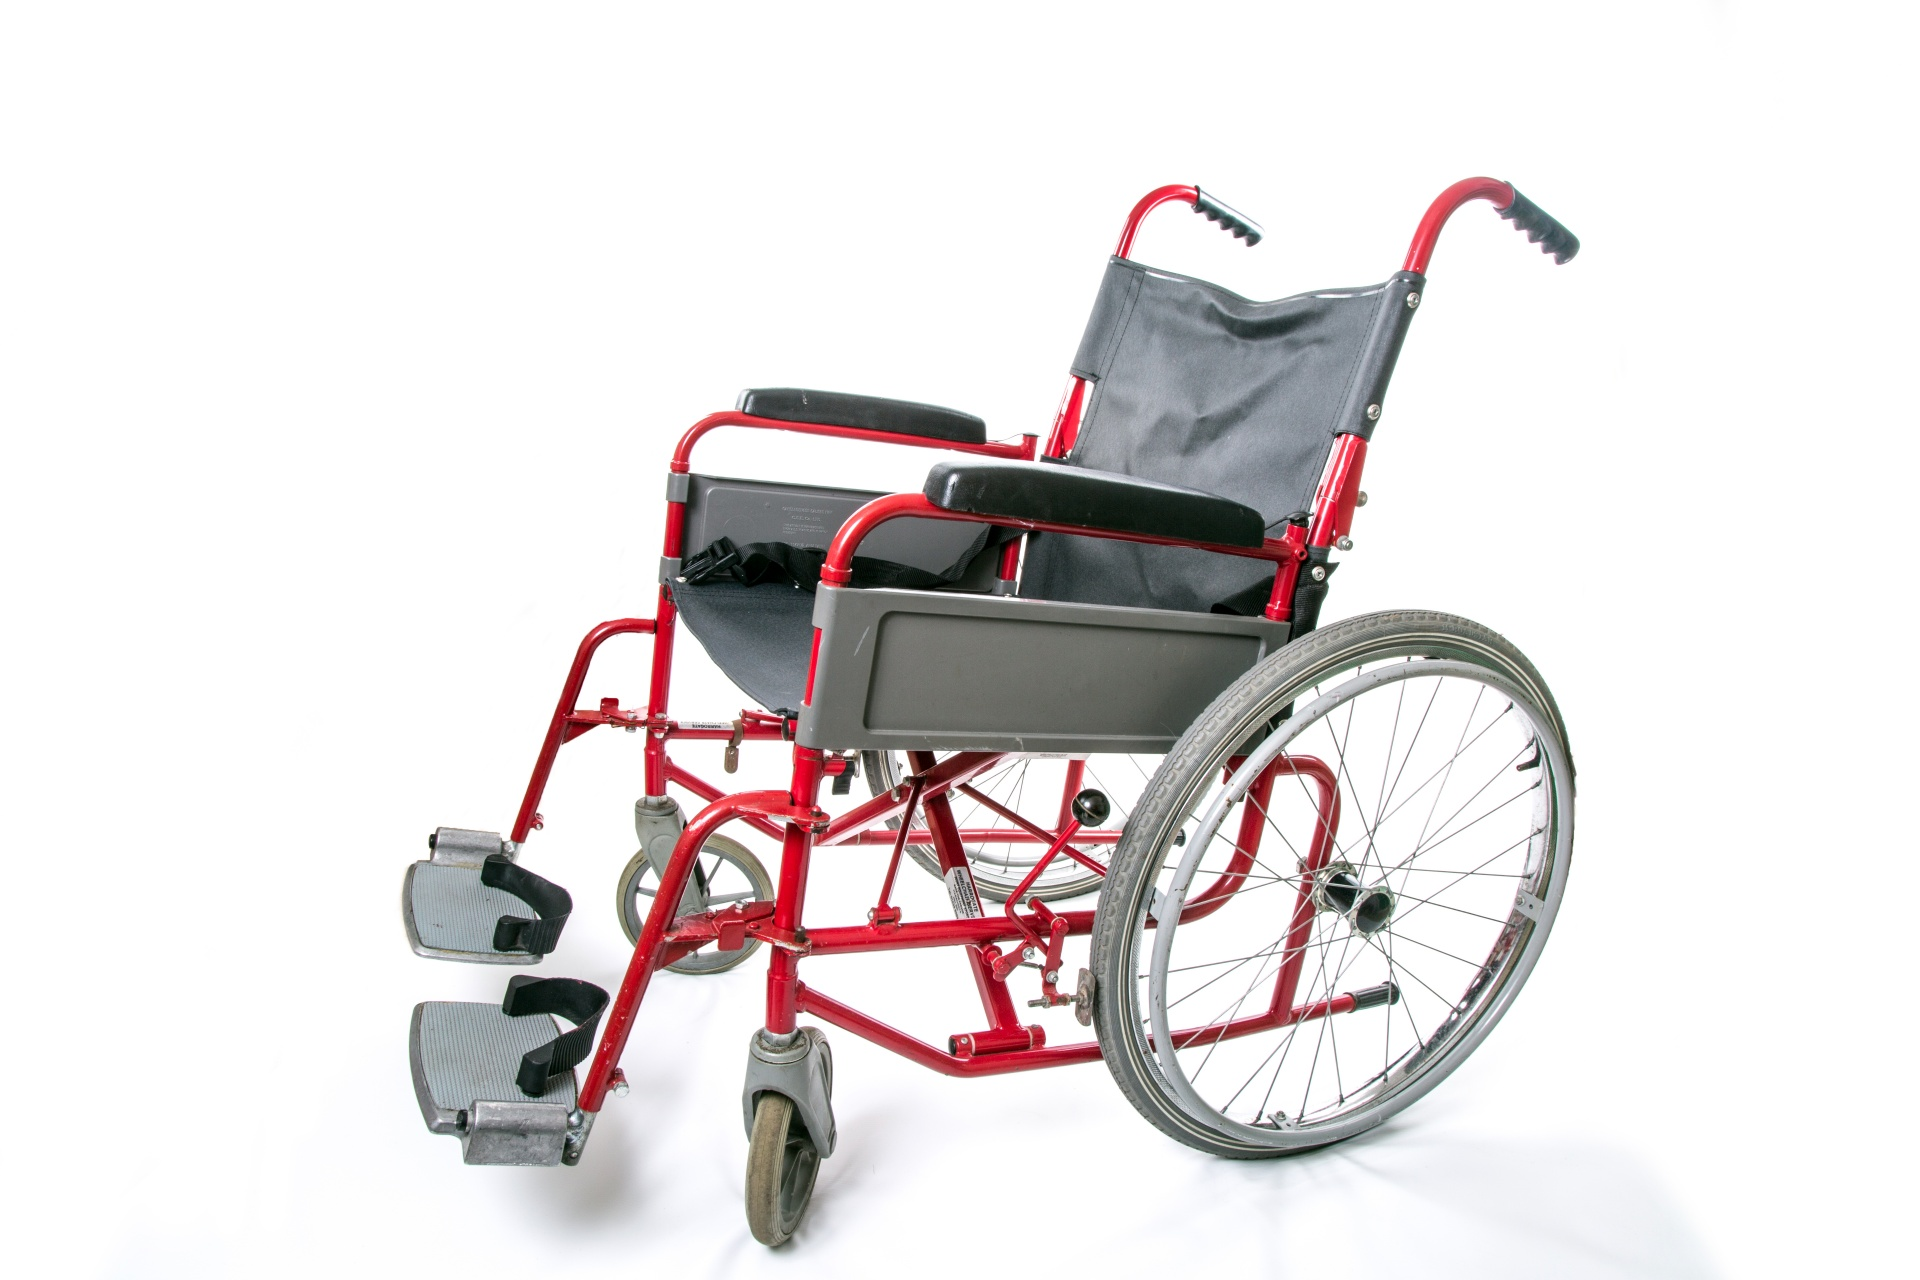 wheelchair used step 2 studio art desk with chair free stock photo - public domain pictures